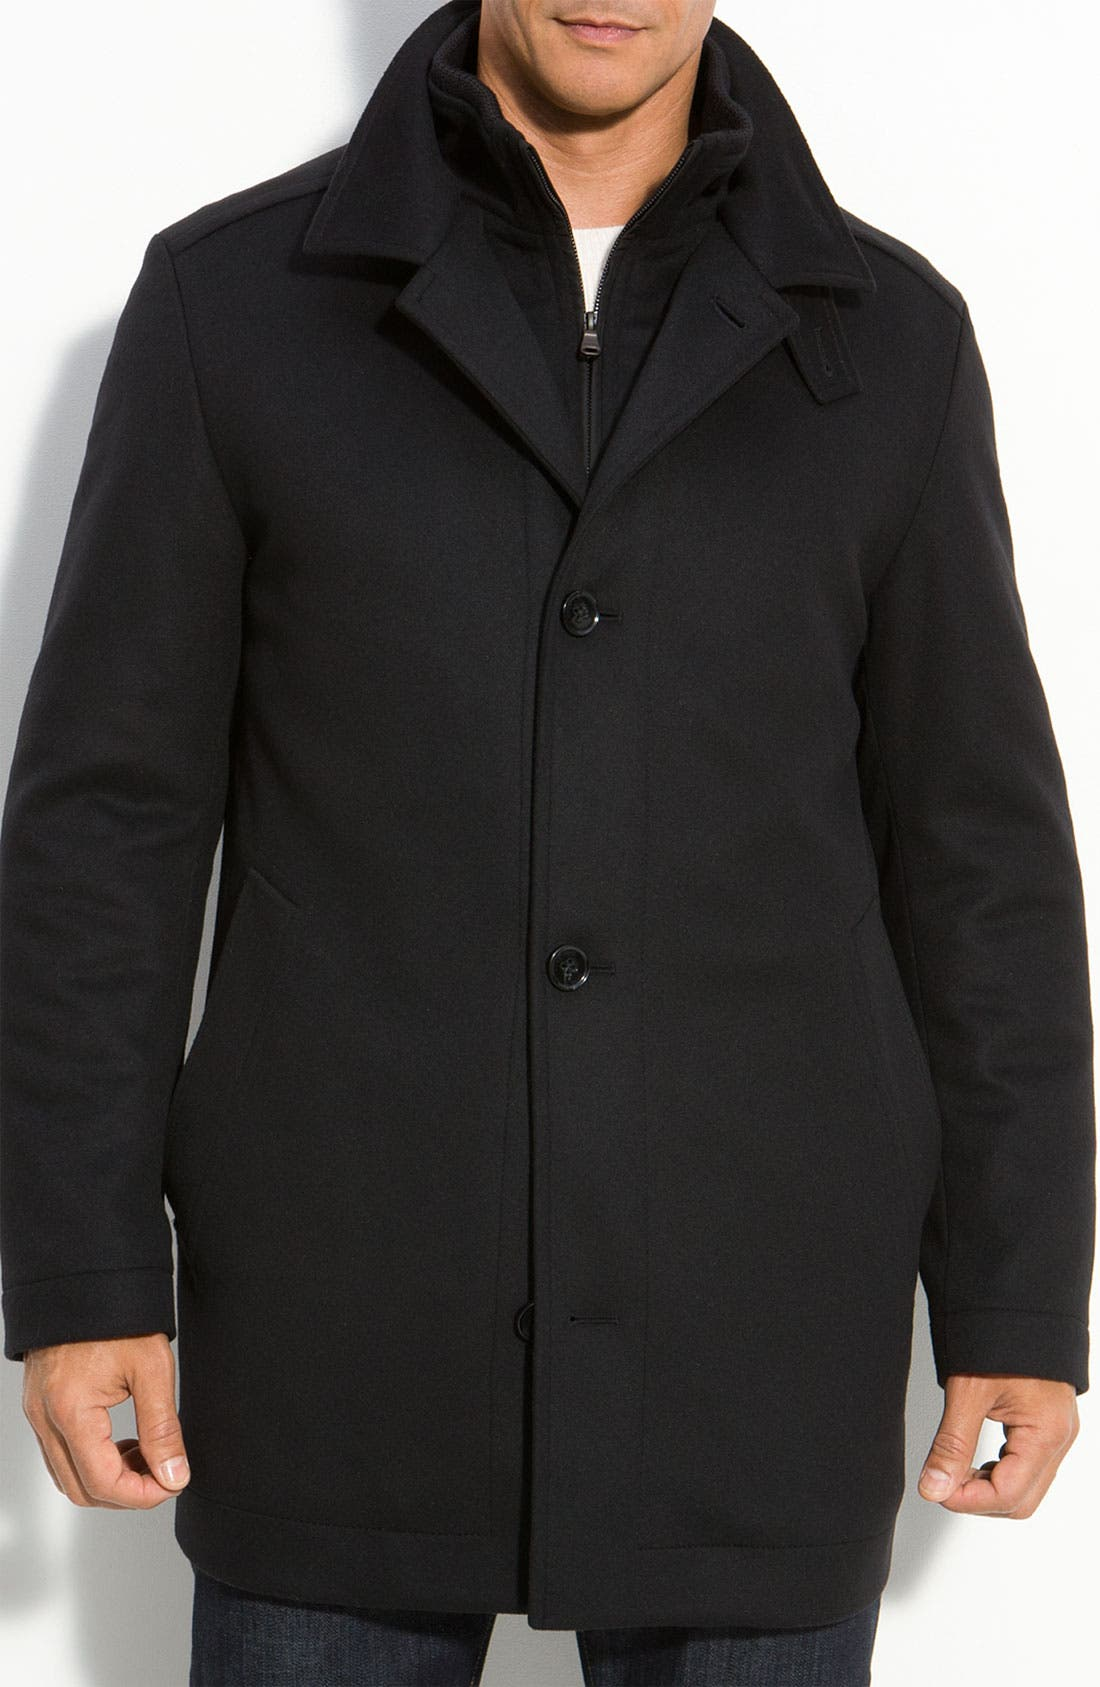 Alternate Image 1 Selected - BOSS HUGO BOSS 'Coxtan' Wool & Cashmere Coat